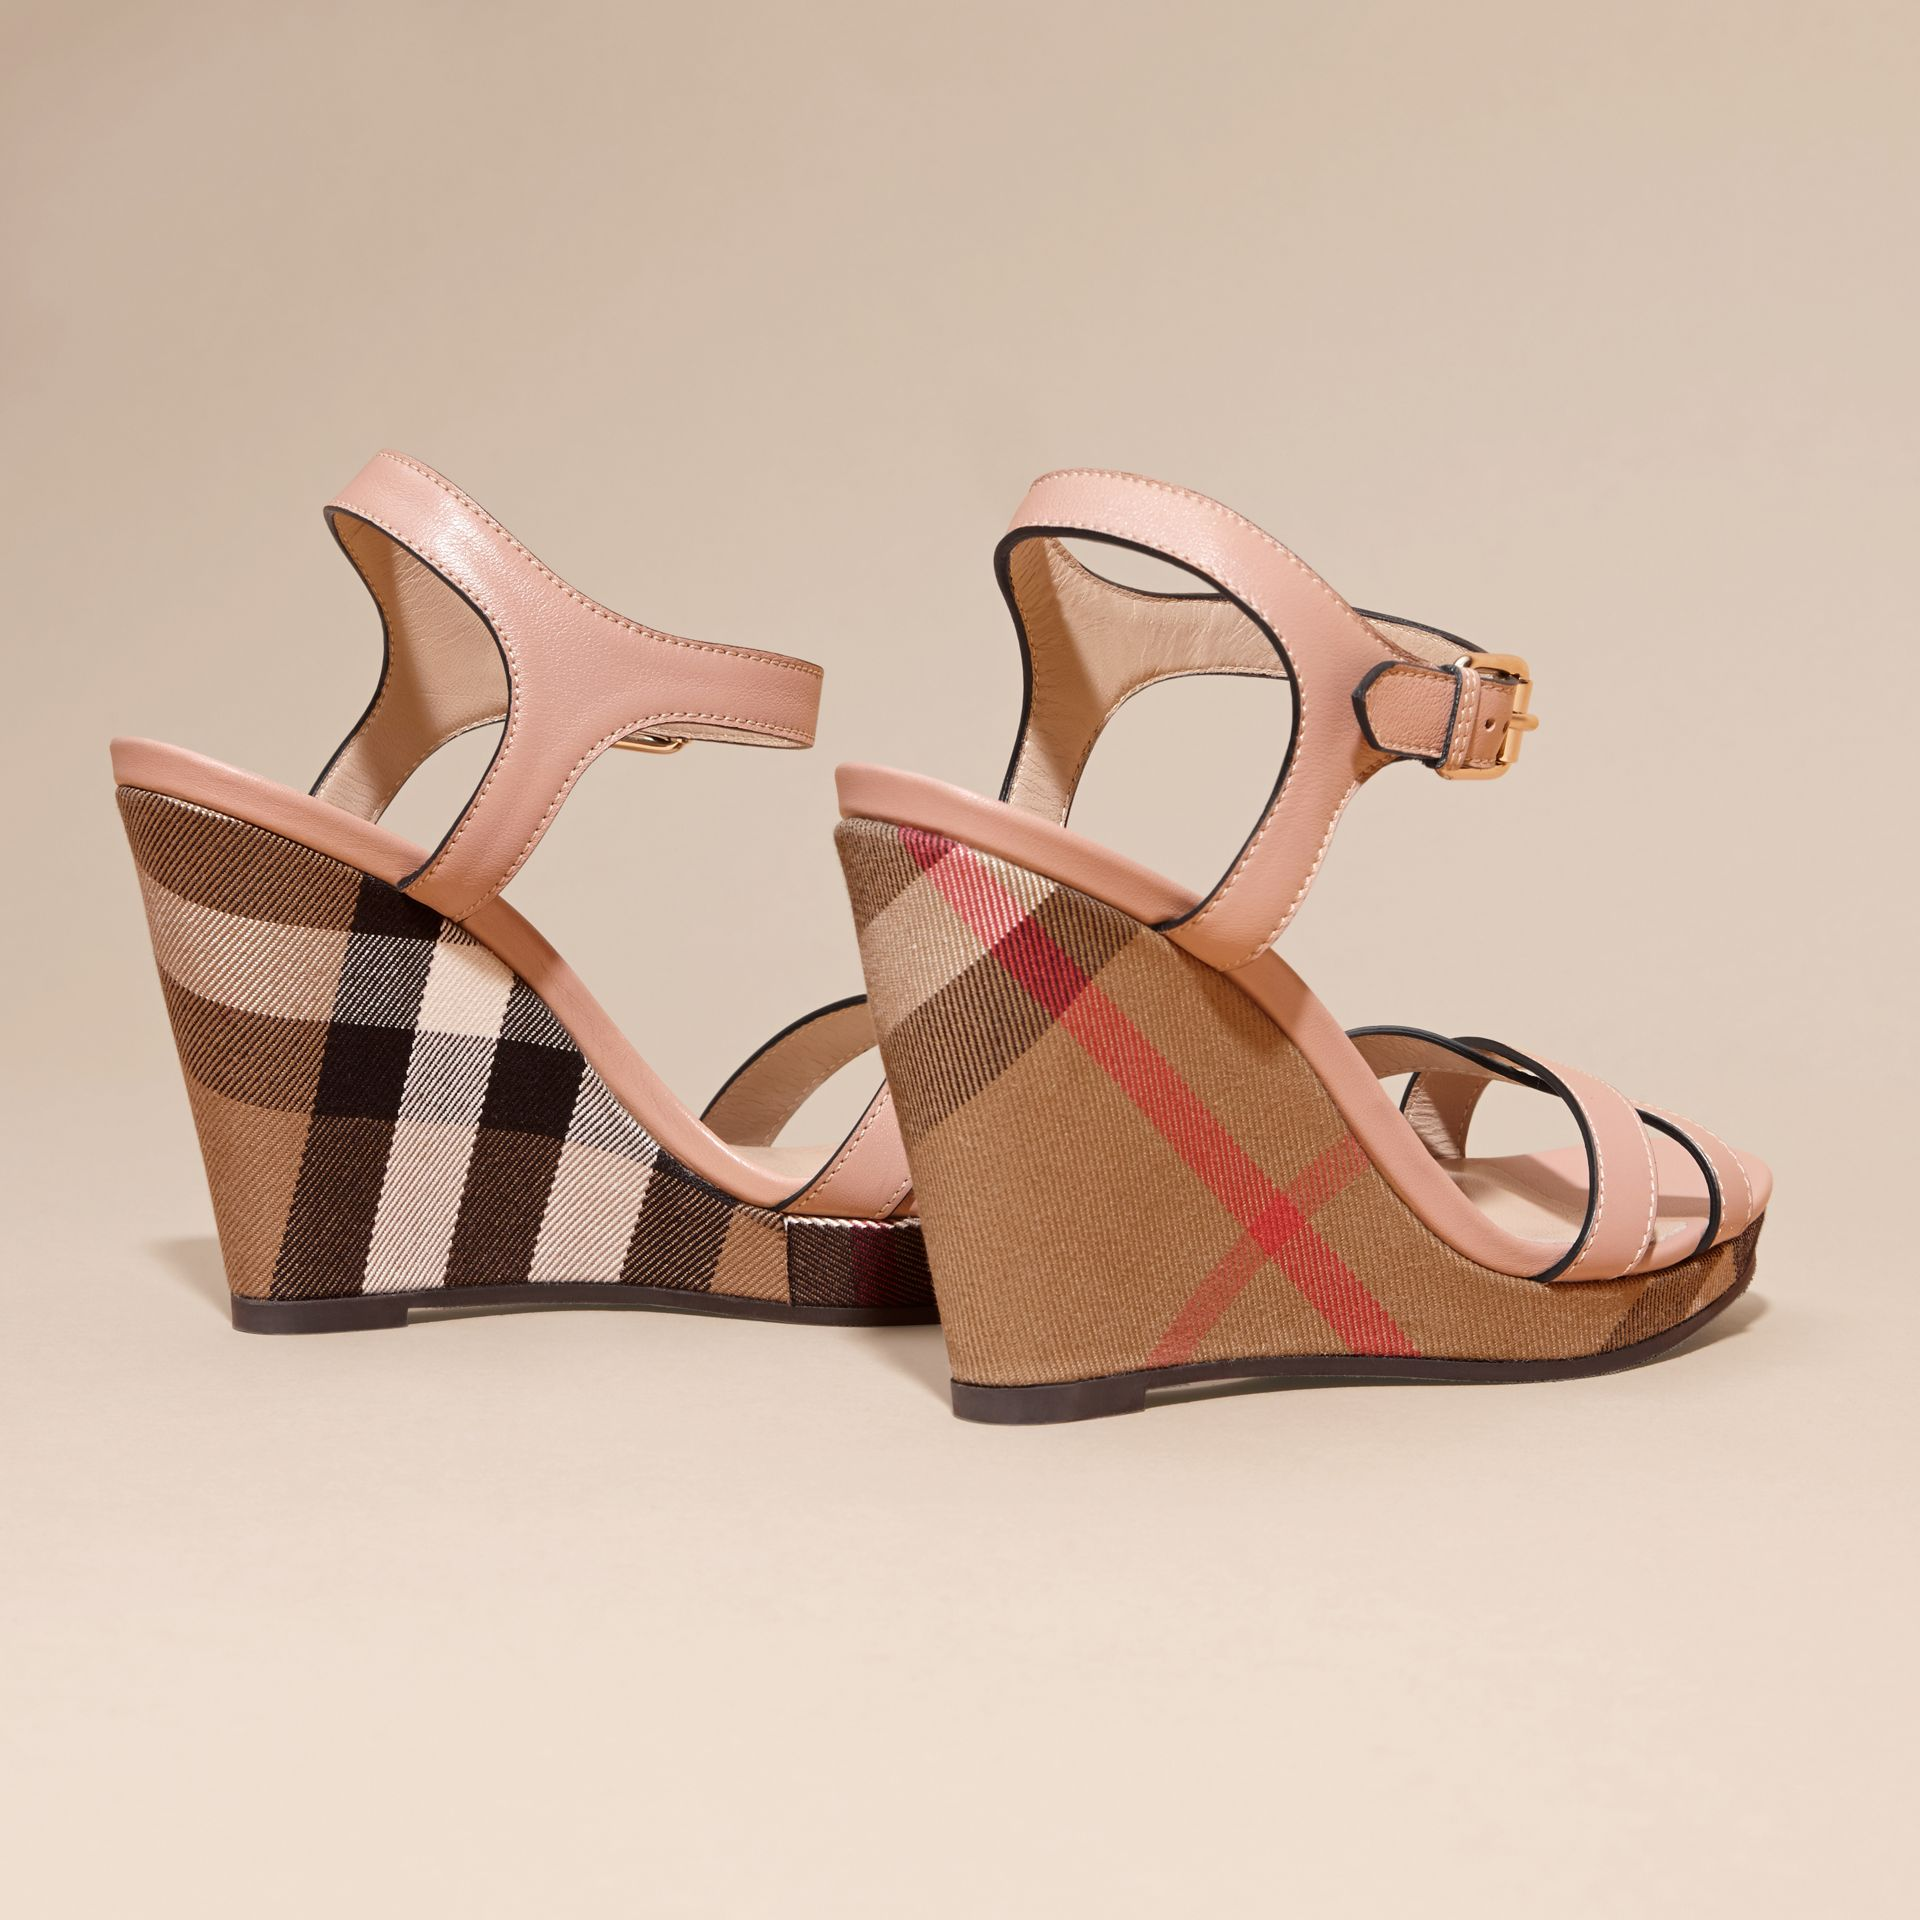 House Check Detail Leather Wedge Sandals in Nude Blush - Women | Burberry Hong Kong - gallery image 4